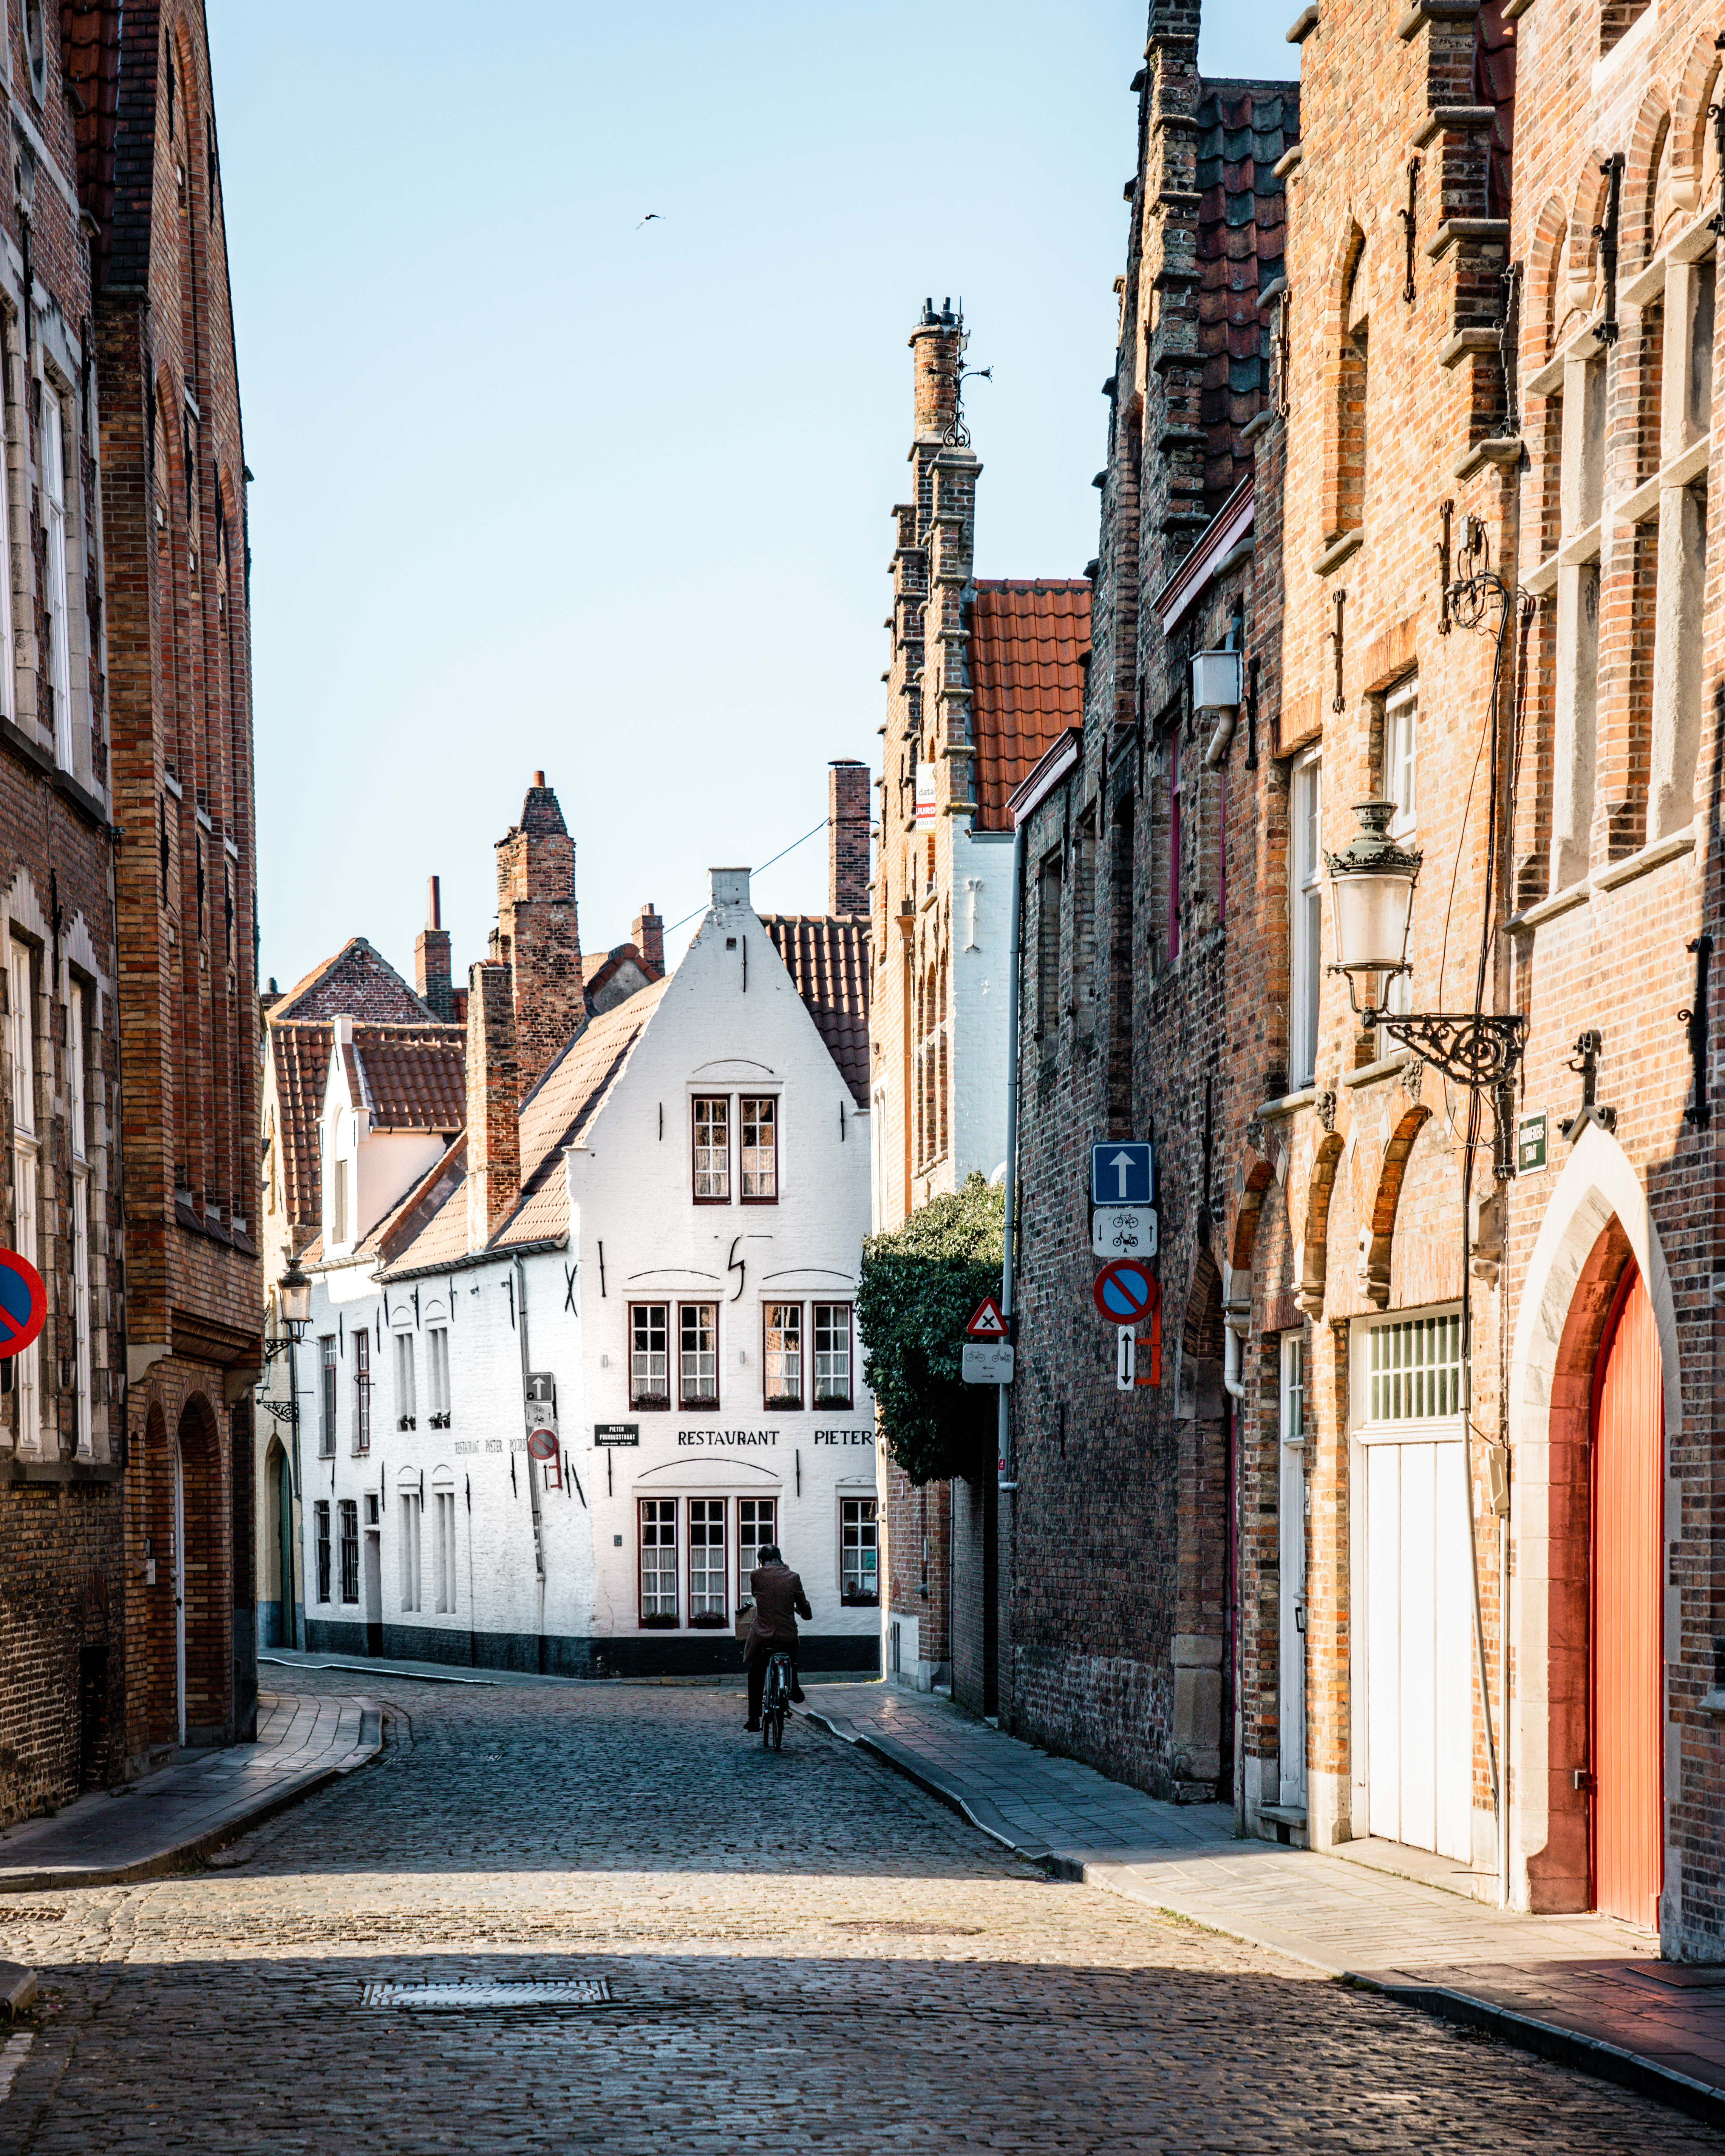 The Most Picturesque Locations in Bruges   Grauwwerkersstraat